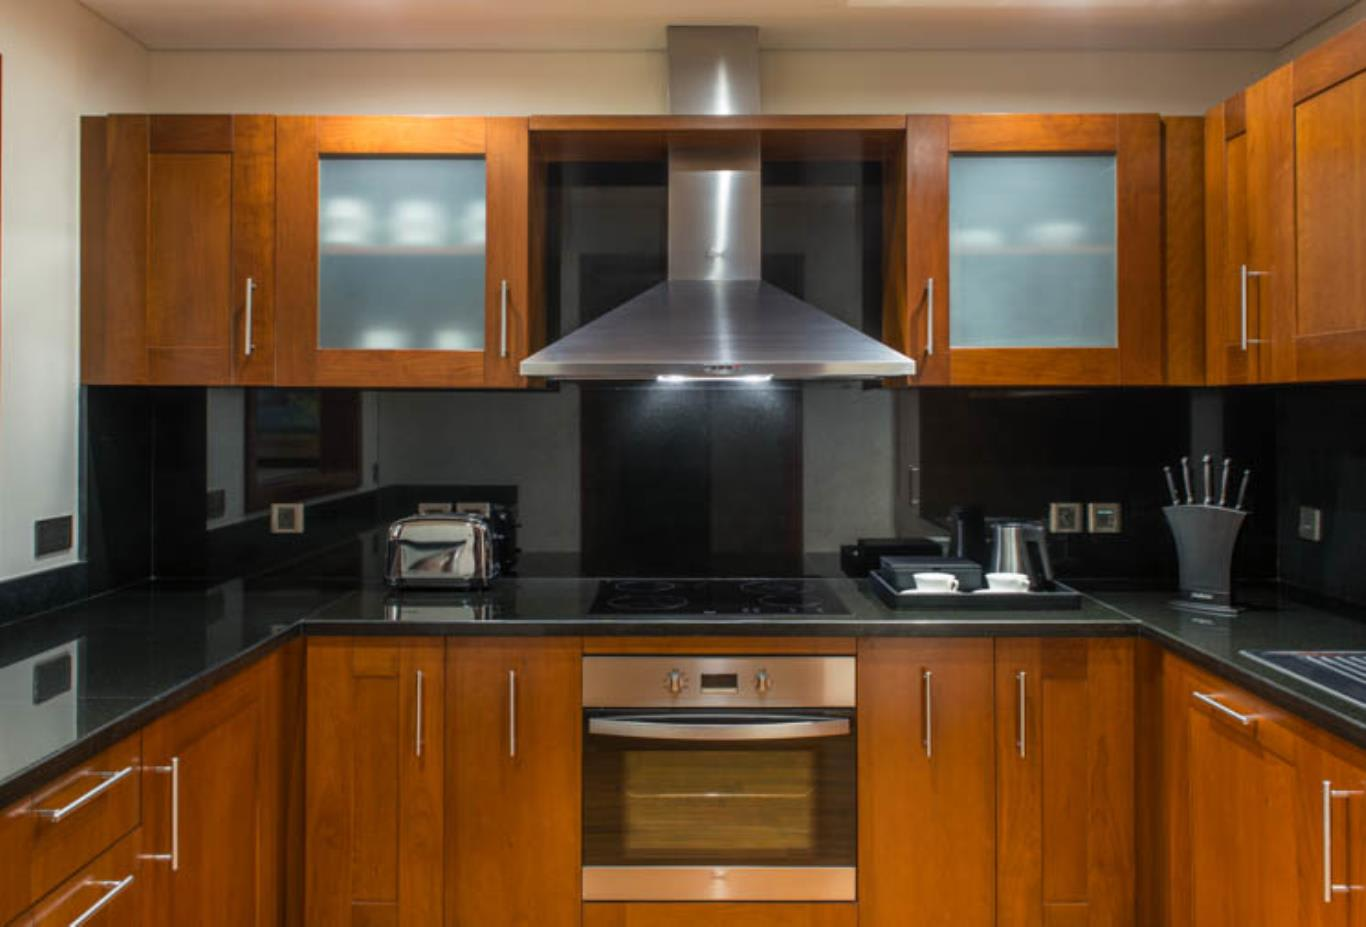 2 Bedroom Residence Apartment Kitchen